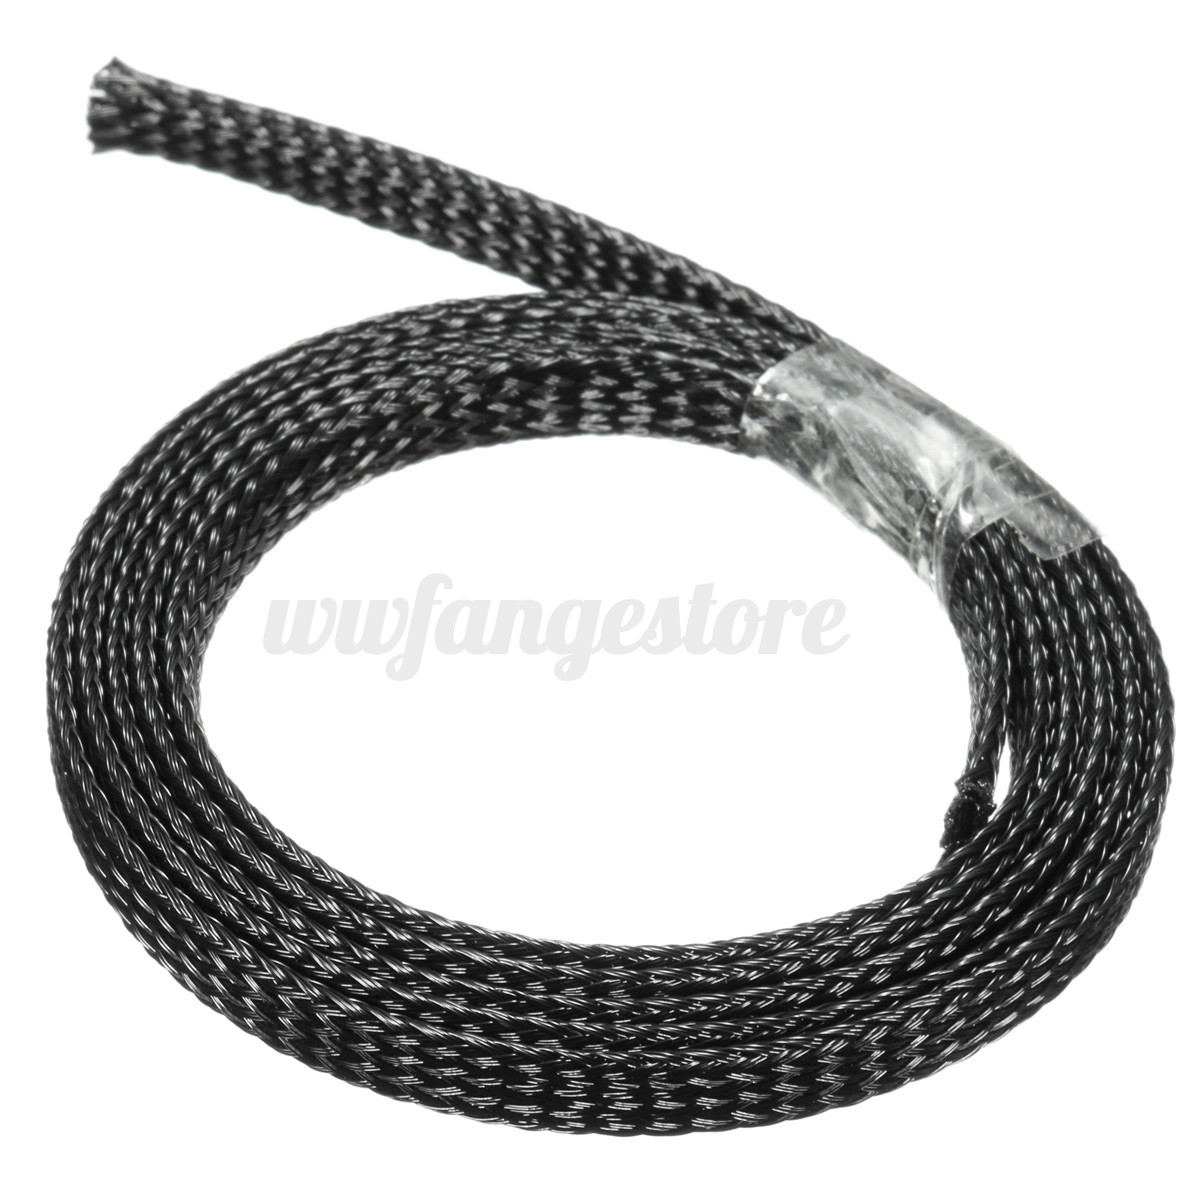 2x-1m-6mm-Braided-Cable-Sheathing-Wire-Tidy-